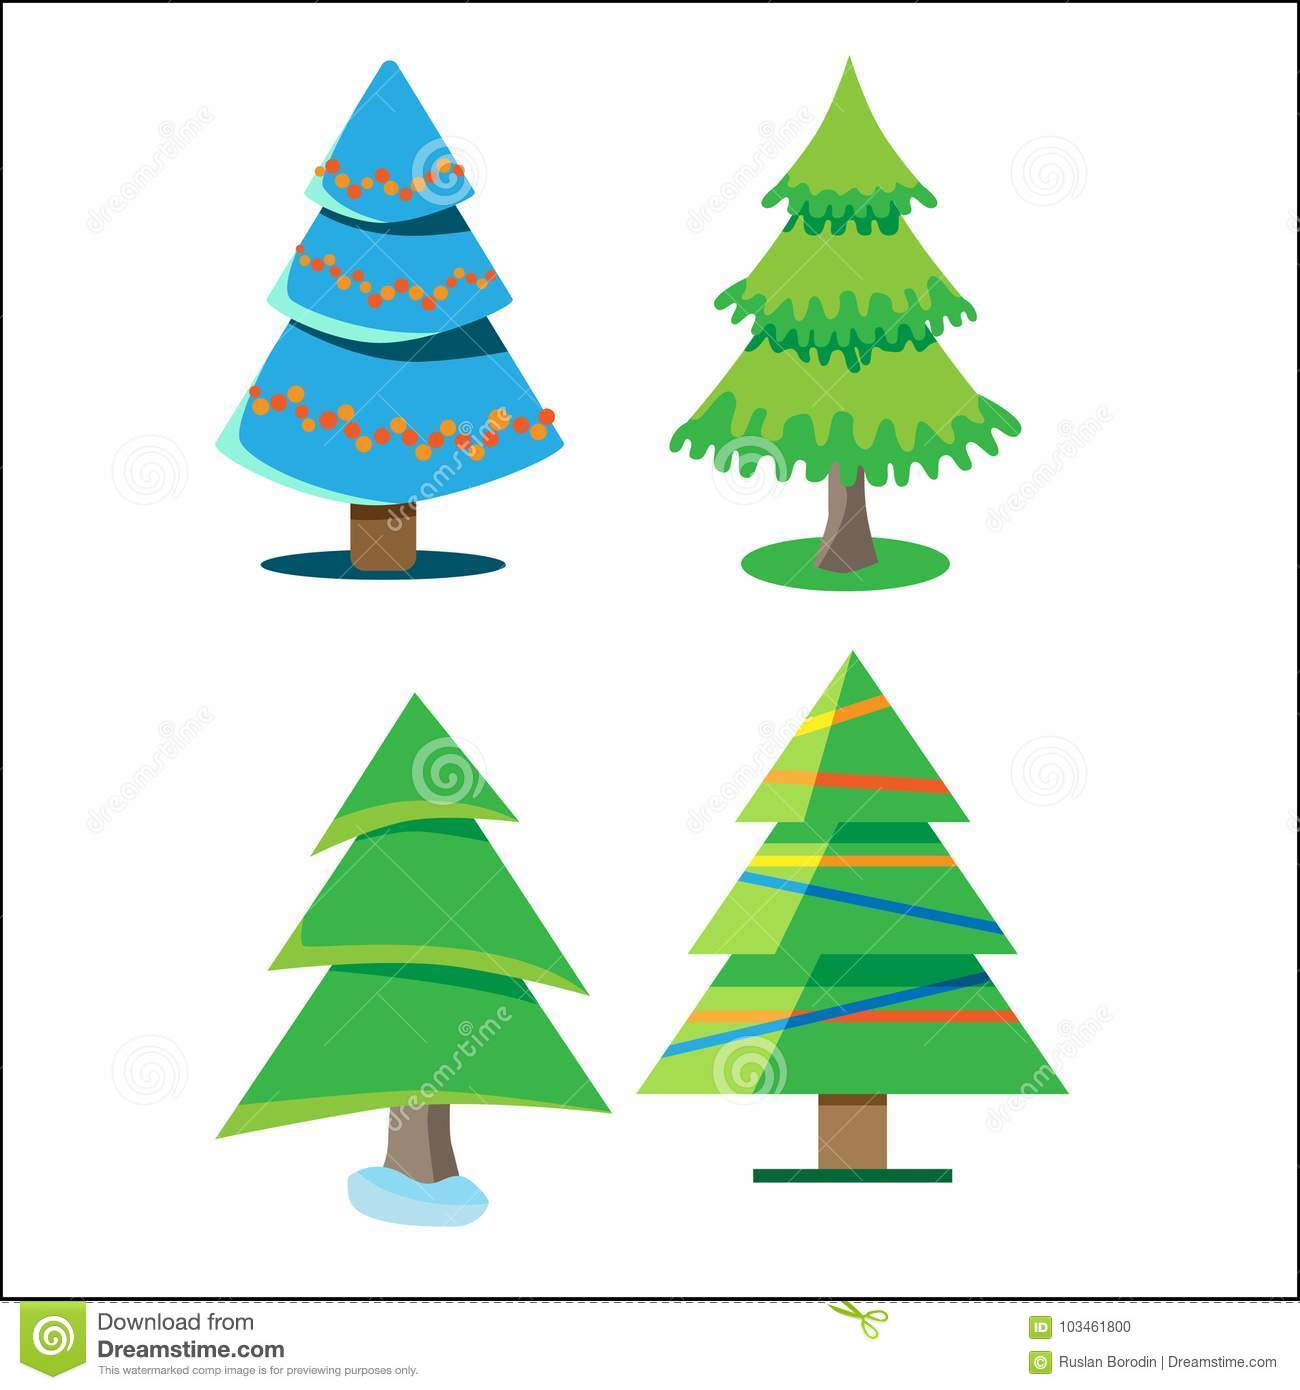 Four Christmas Trees With Different Colors And Shapes. Vector ...